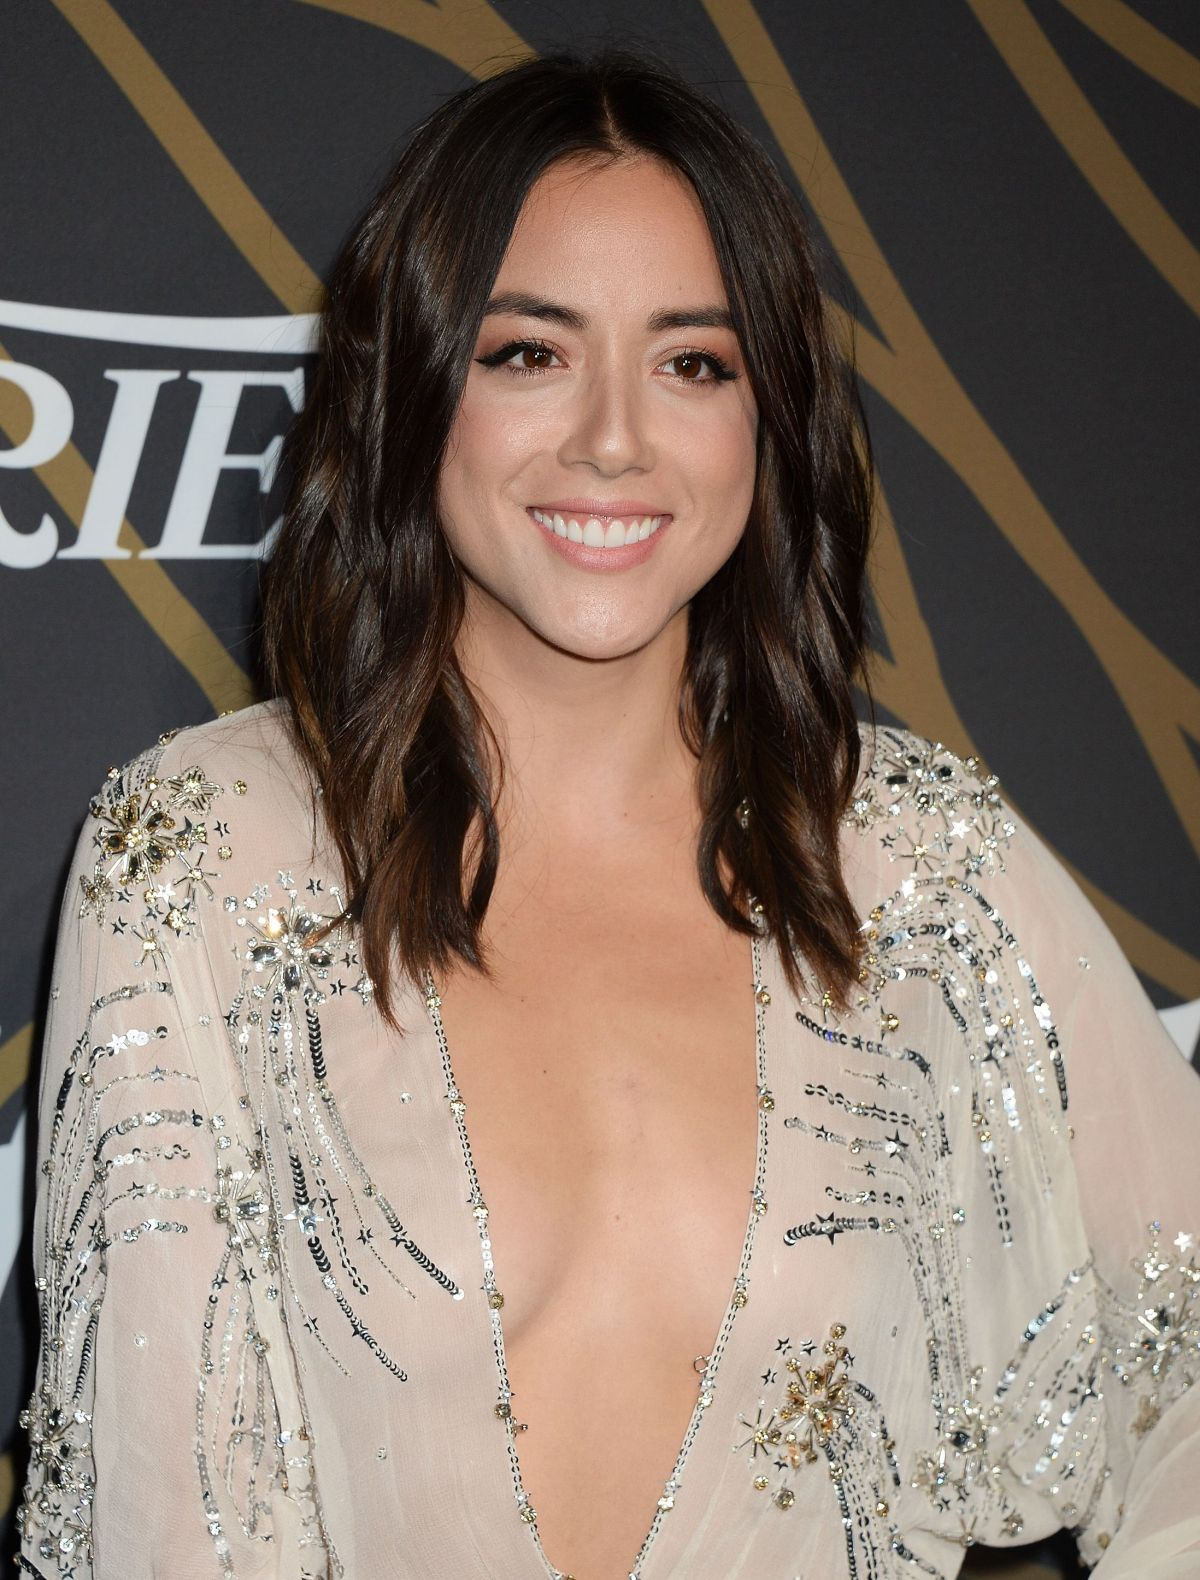 Young Chloe Bennet nude photos 2019